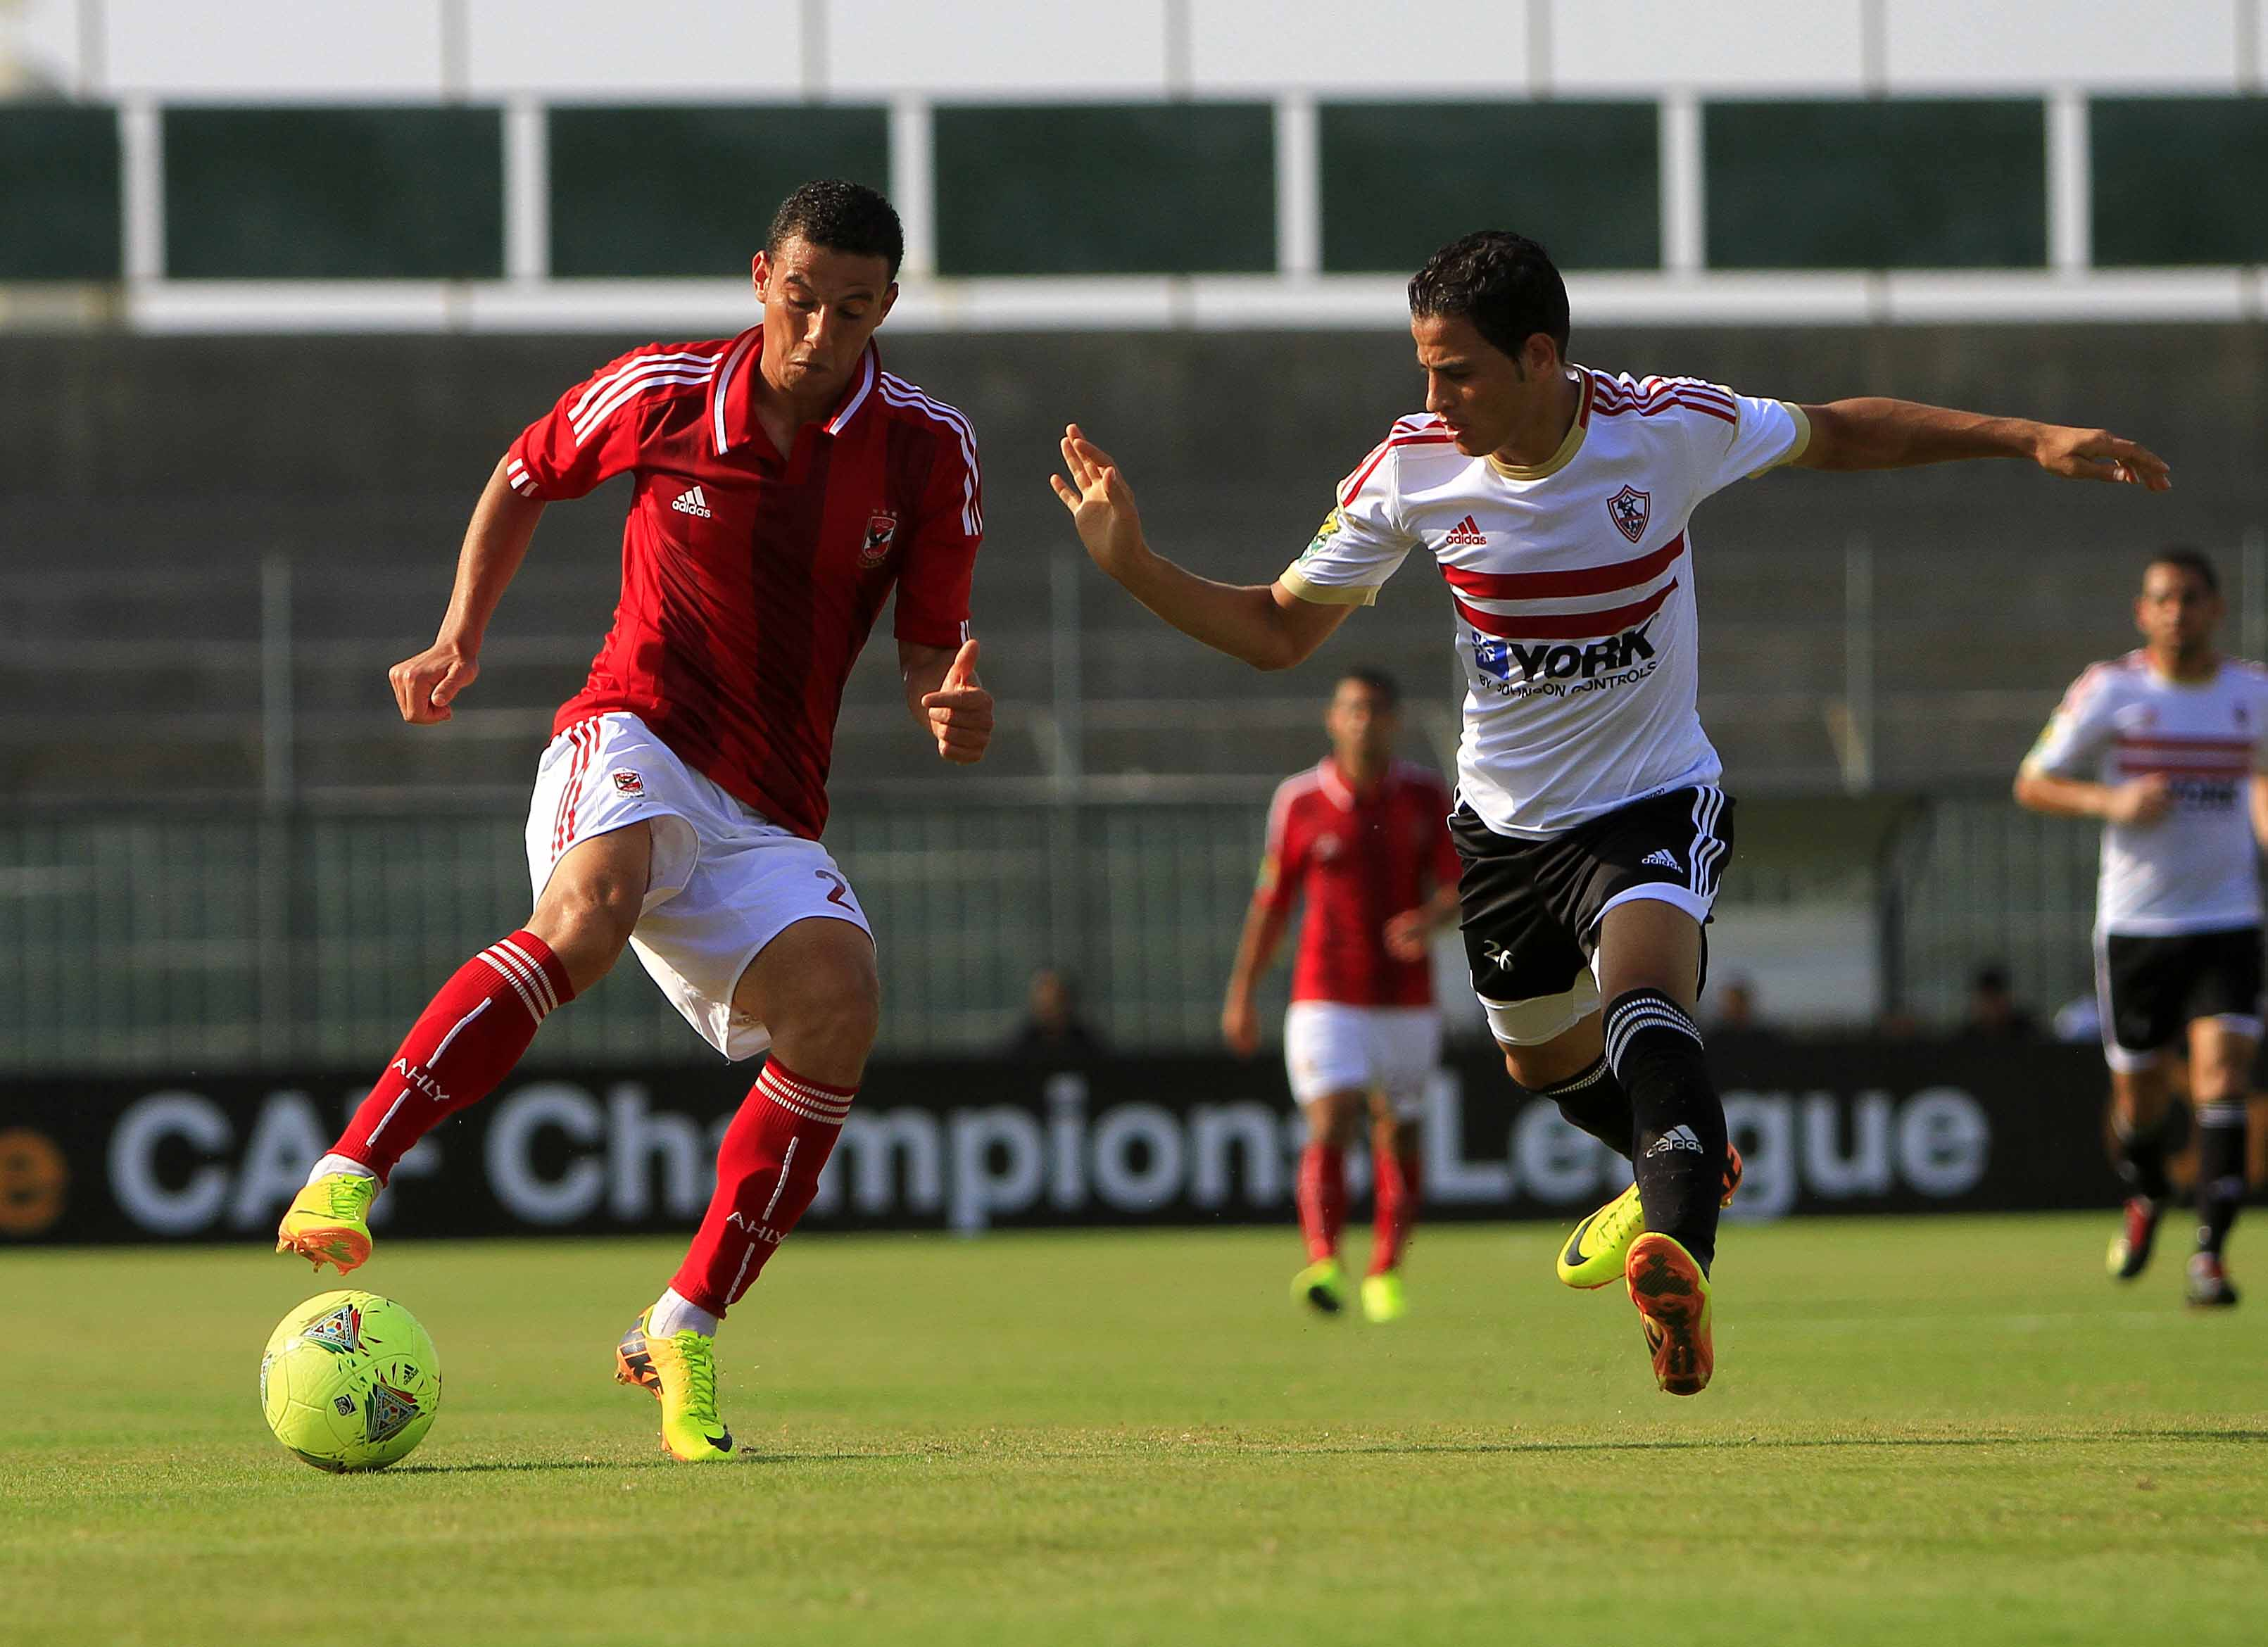 Ahmad Abdel-Zaher of Al-Ahly and Ahmad Tawfik of Zamalek challenge for the ball in the Cairo derby match last Sunday. (Photo by Ahmed Al-Malky)